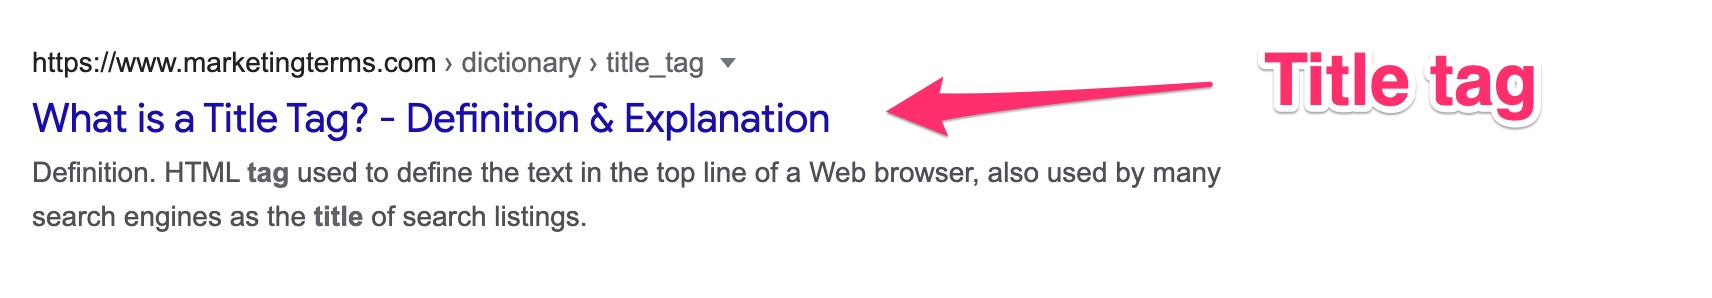 example of a title tag as displayed in a SERP snippet